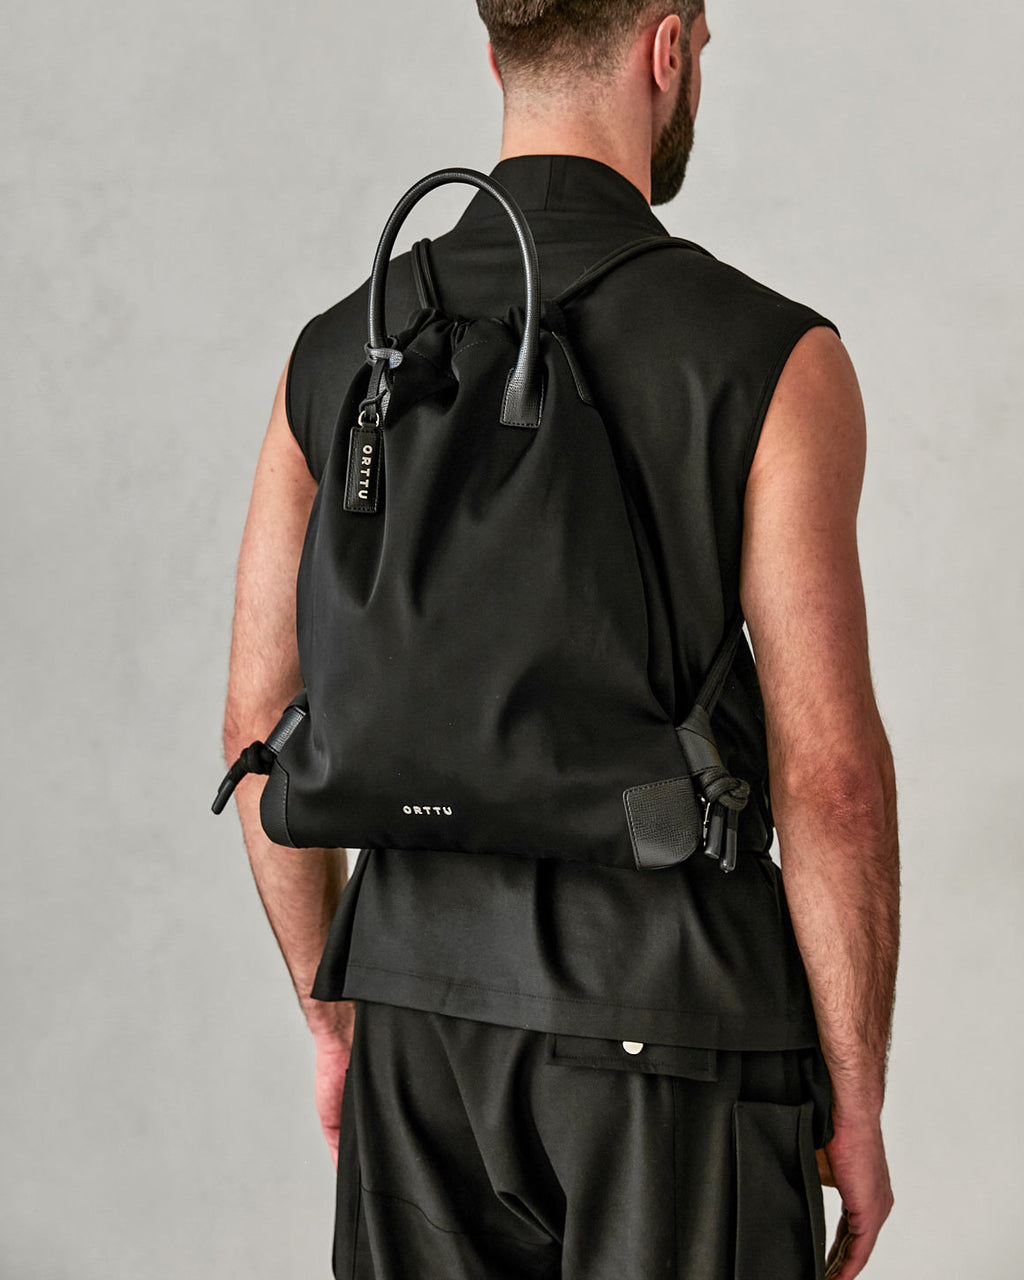 Wire Backpack - Black